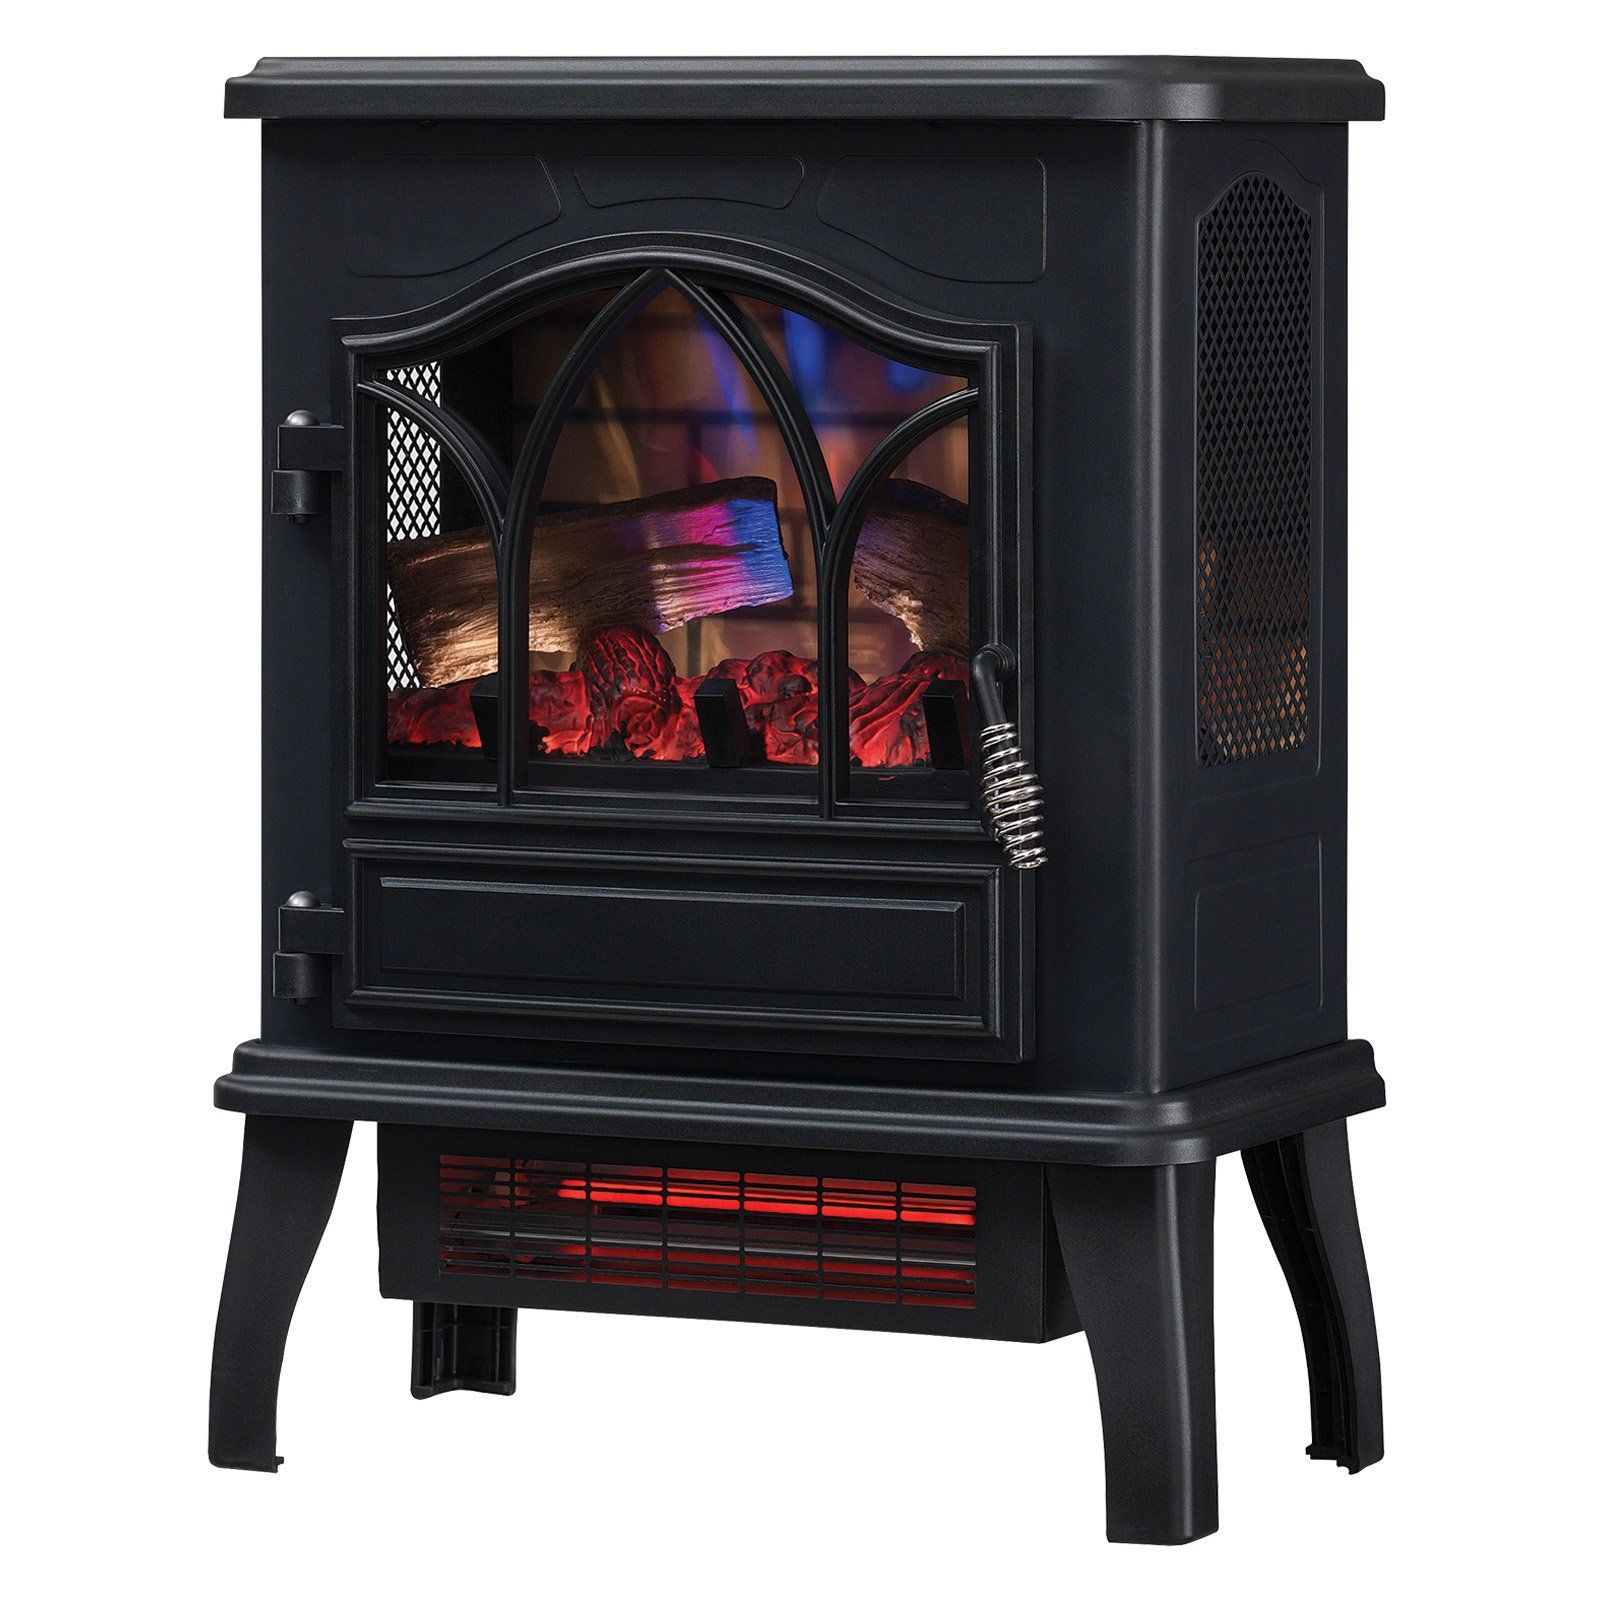 Duraflame 3d Infrared Quartz Electric Fireplace Stove Portable